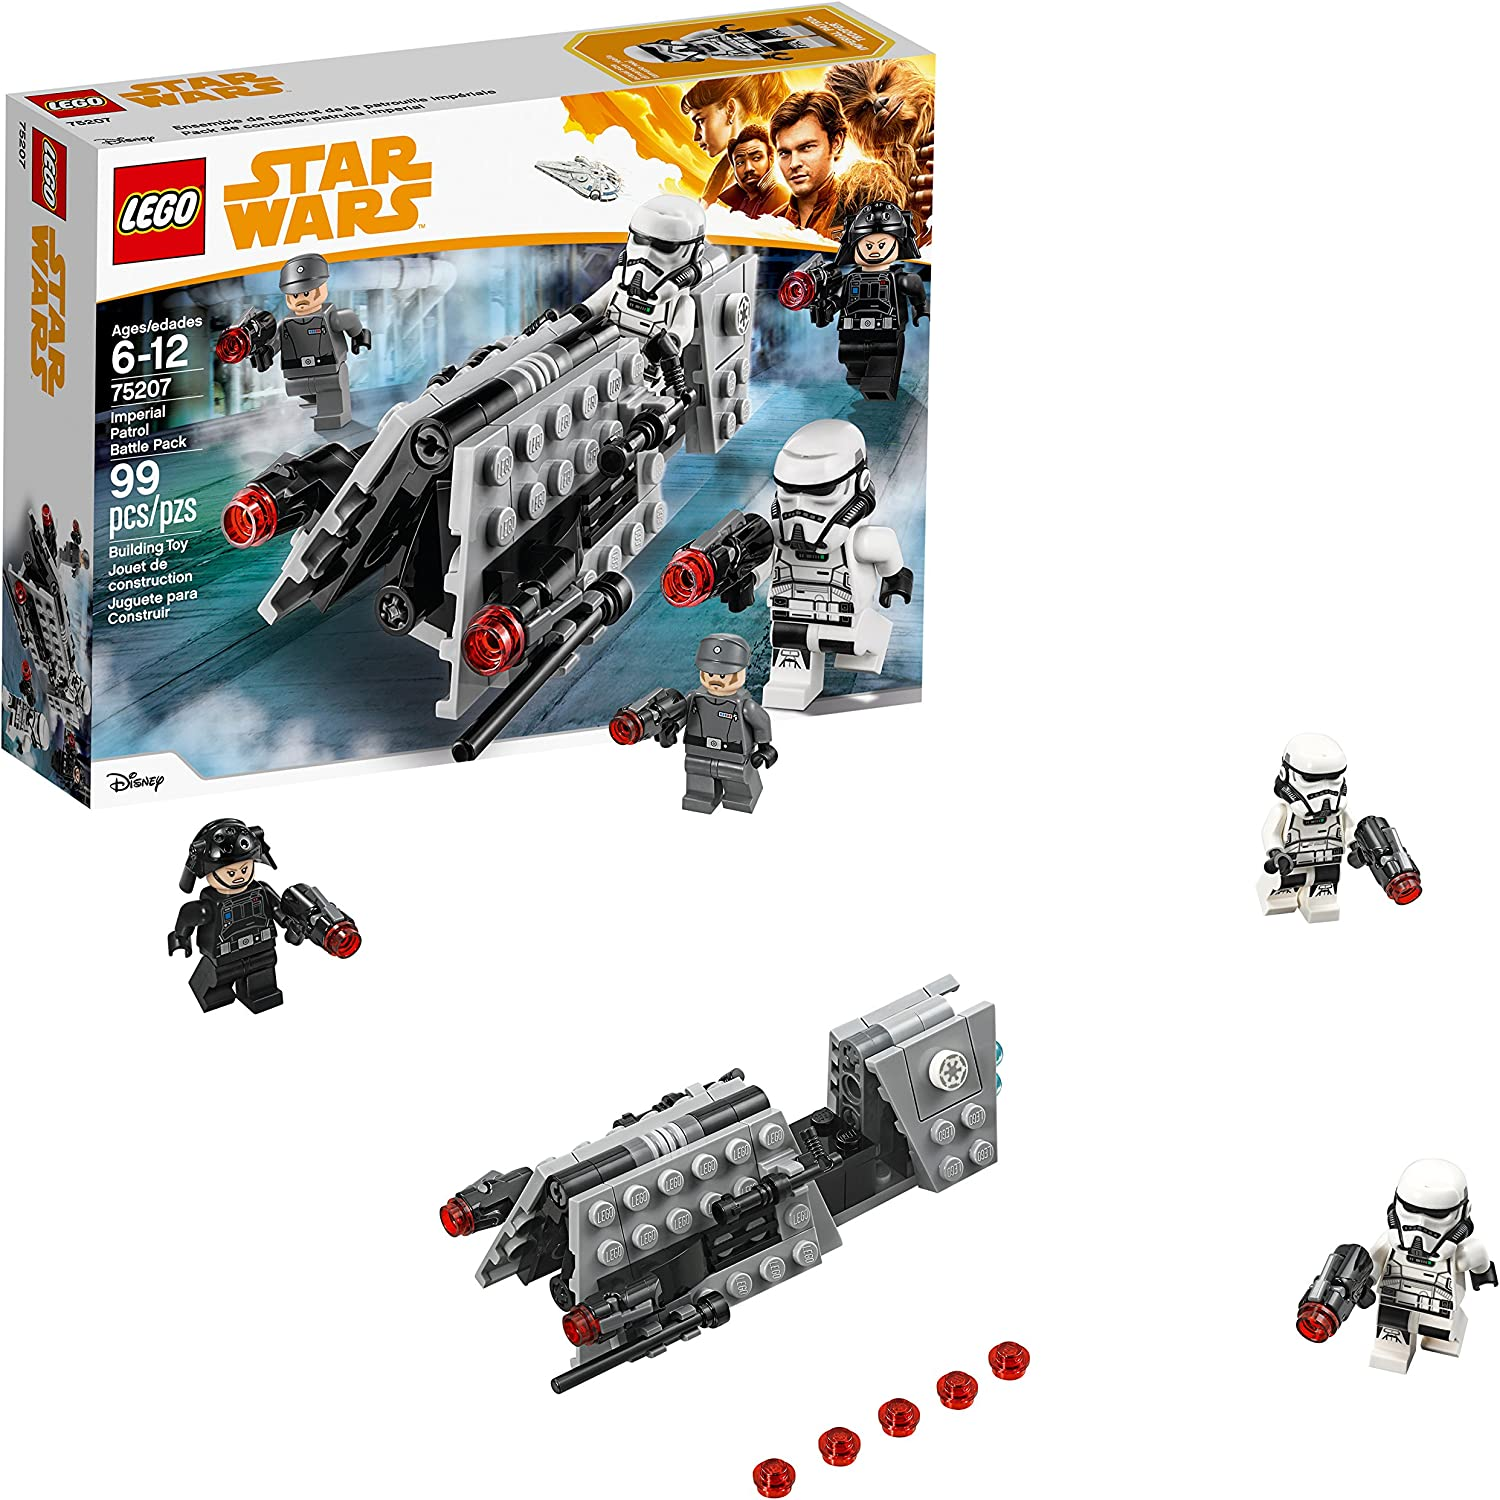 Amazon Com Lego Star Wars Imperial Patrol Battle Pack 75207 Building Kit 99 Piece Toys Games